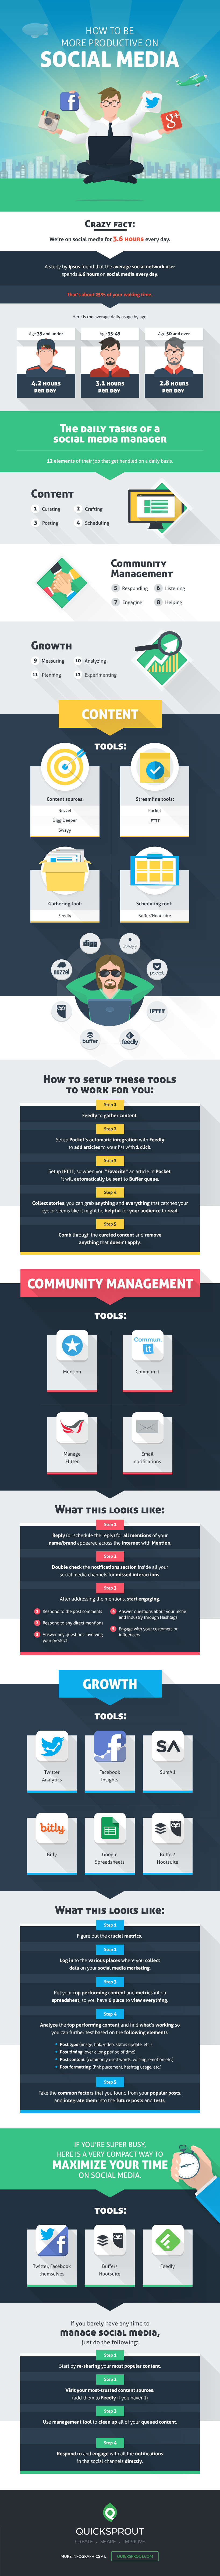 Here's how busy social media managers organize their day and stay productive - #SocialMedia #infographic